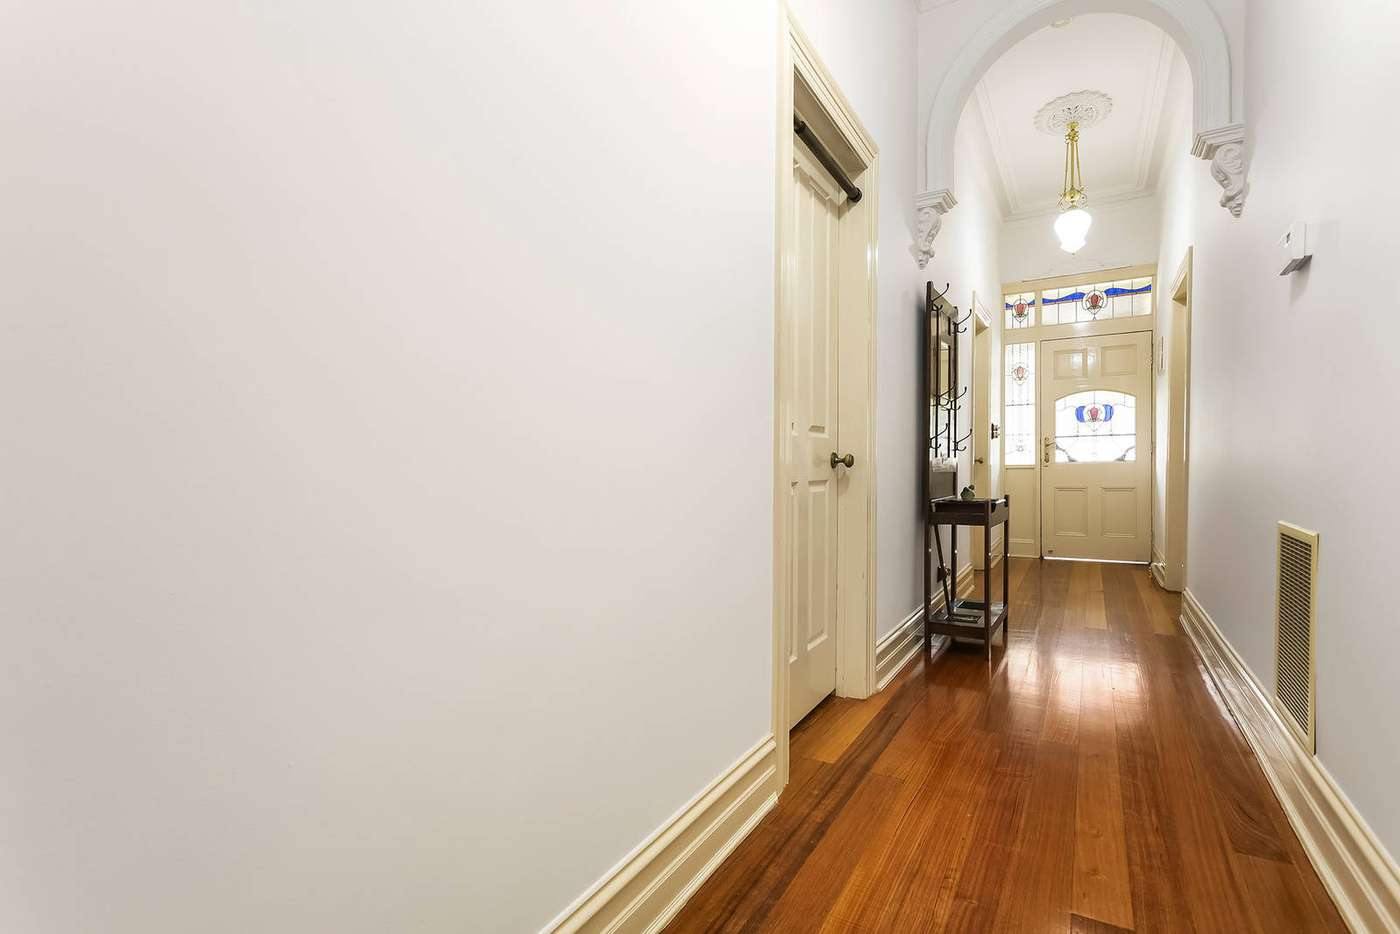 Sixth view of Homely house listing, 12 Elizabeth Street, Newport VIC 3015